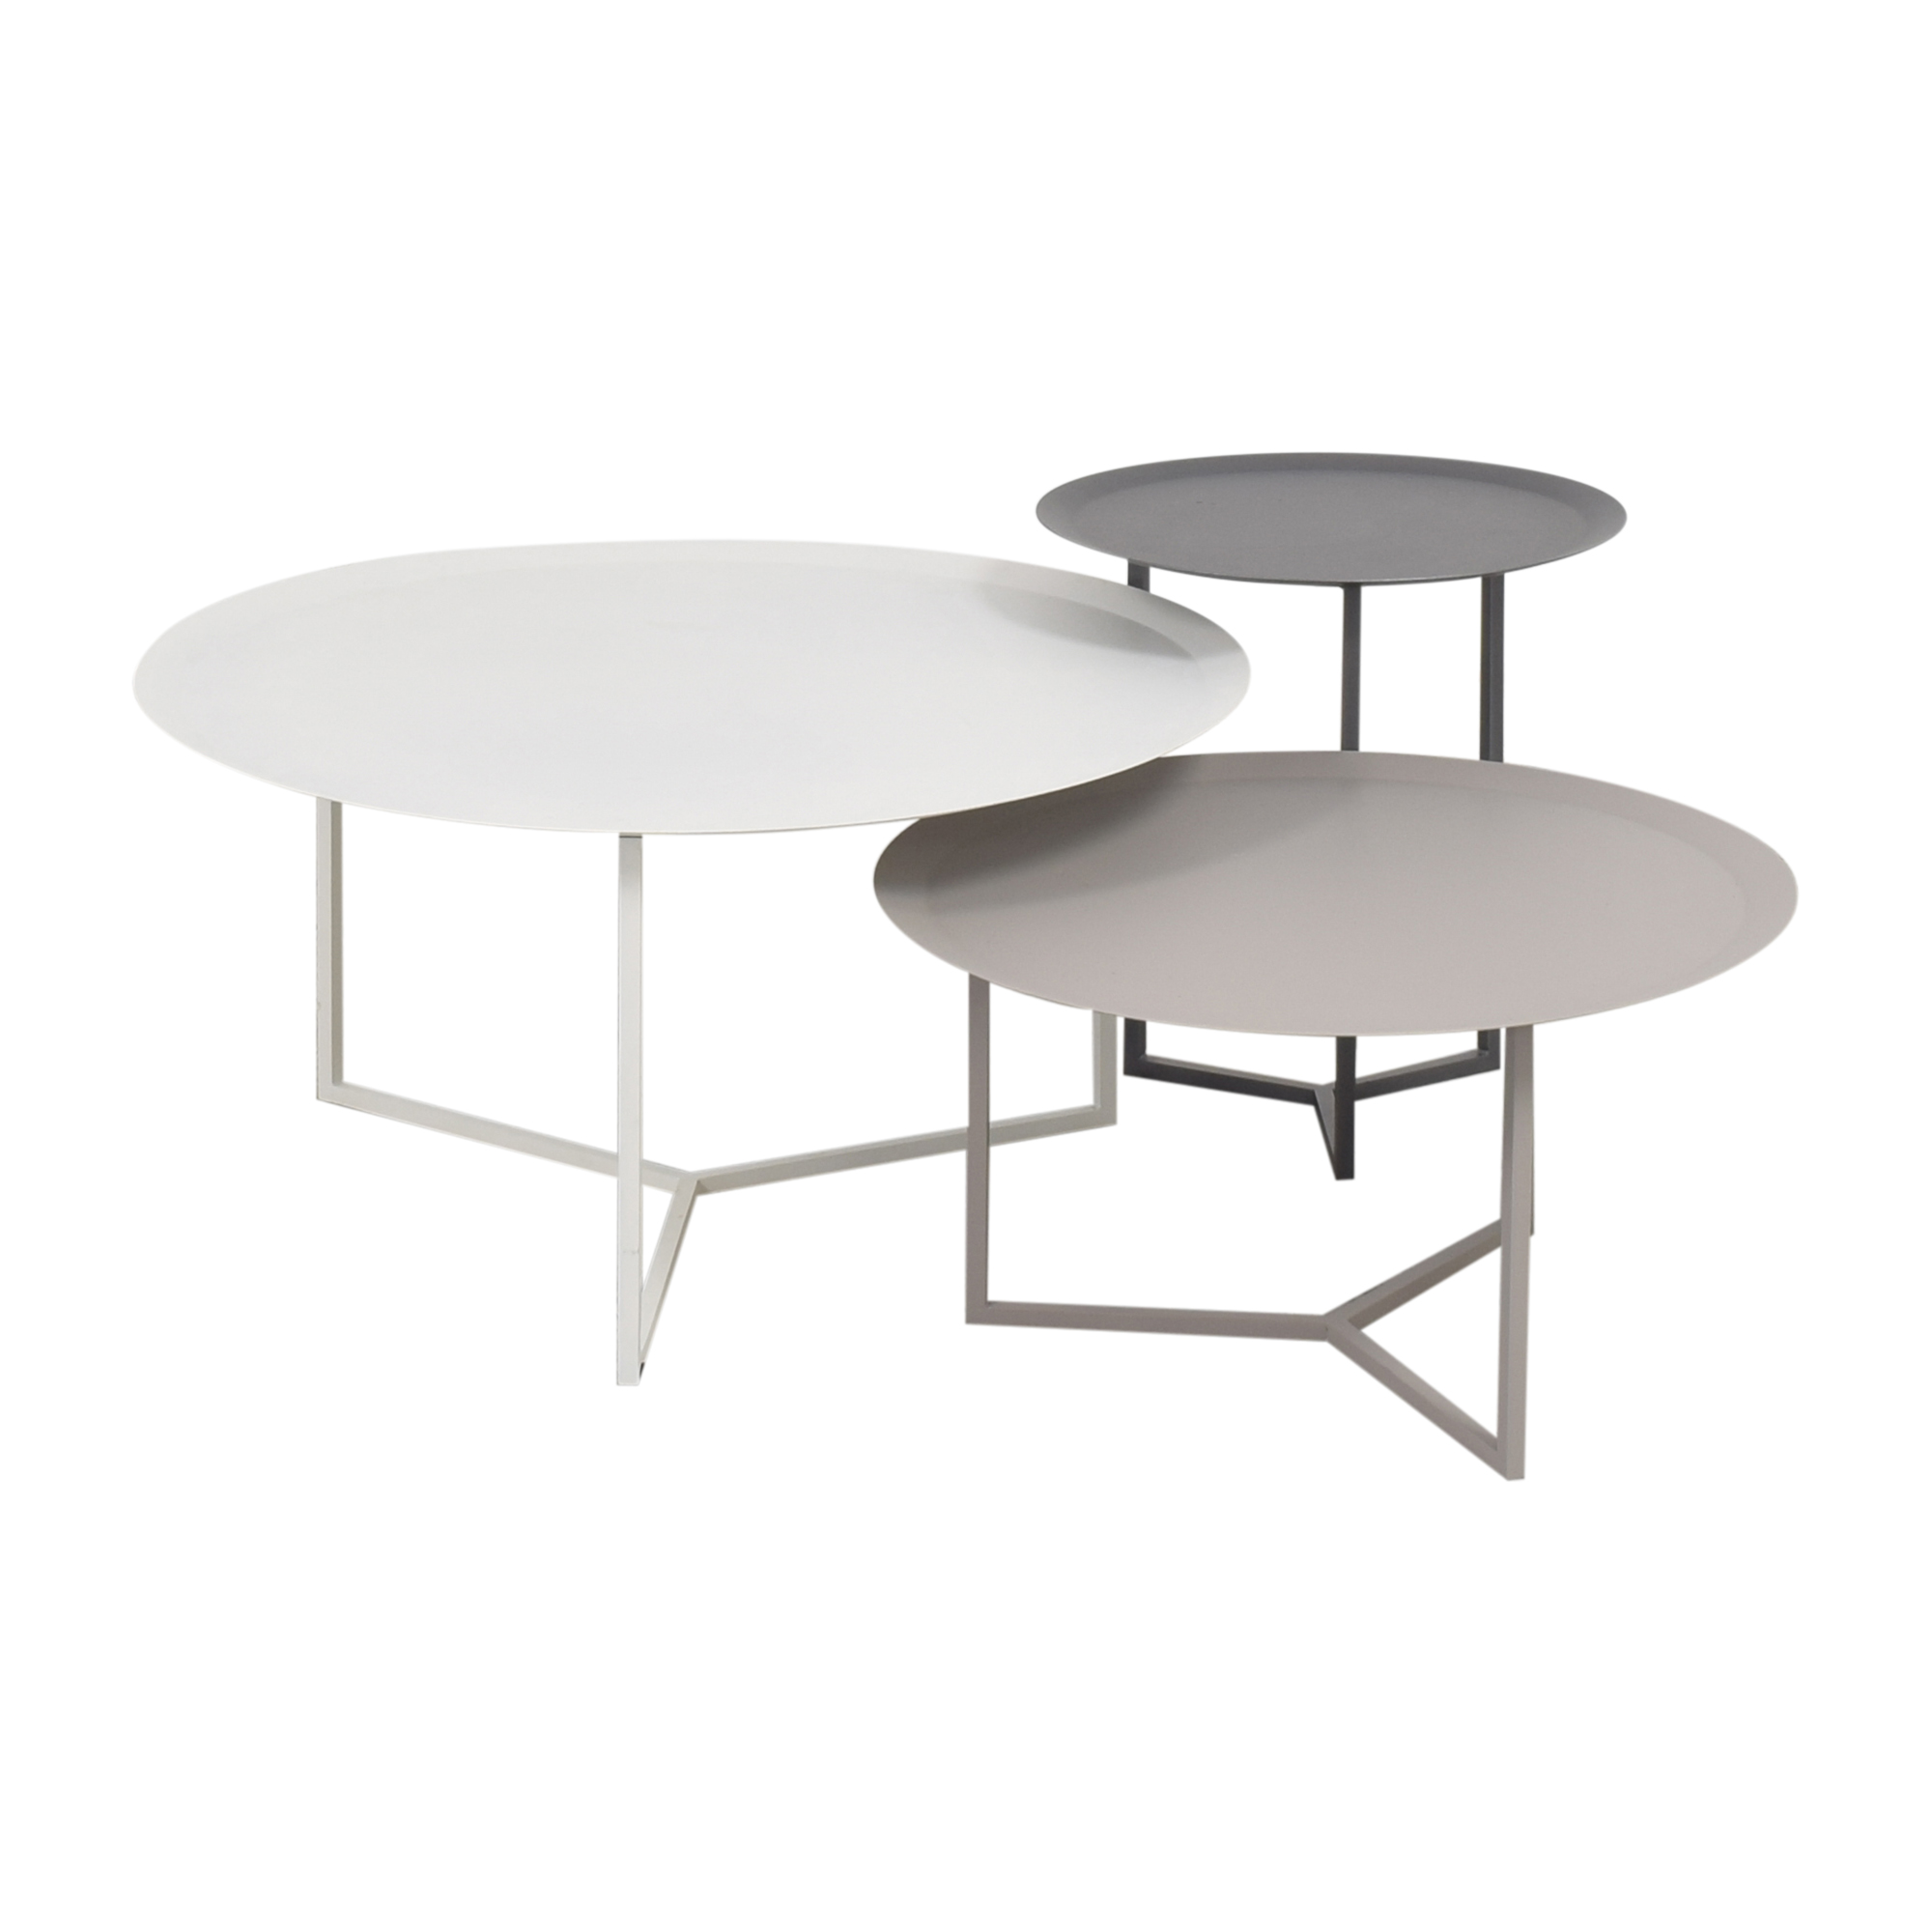 Trica Trica Tam Tam Accent Tables used